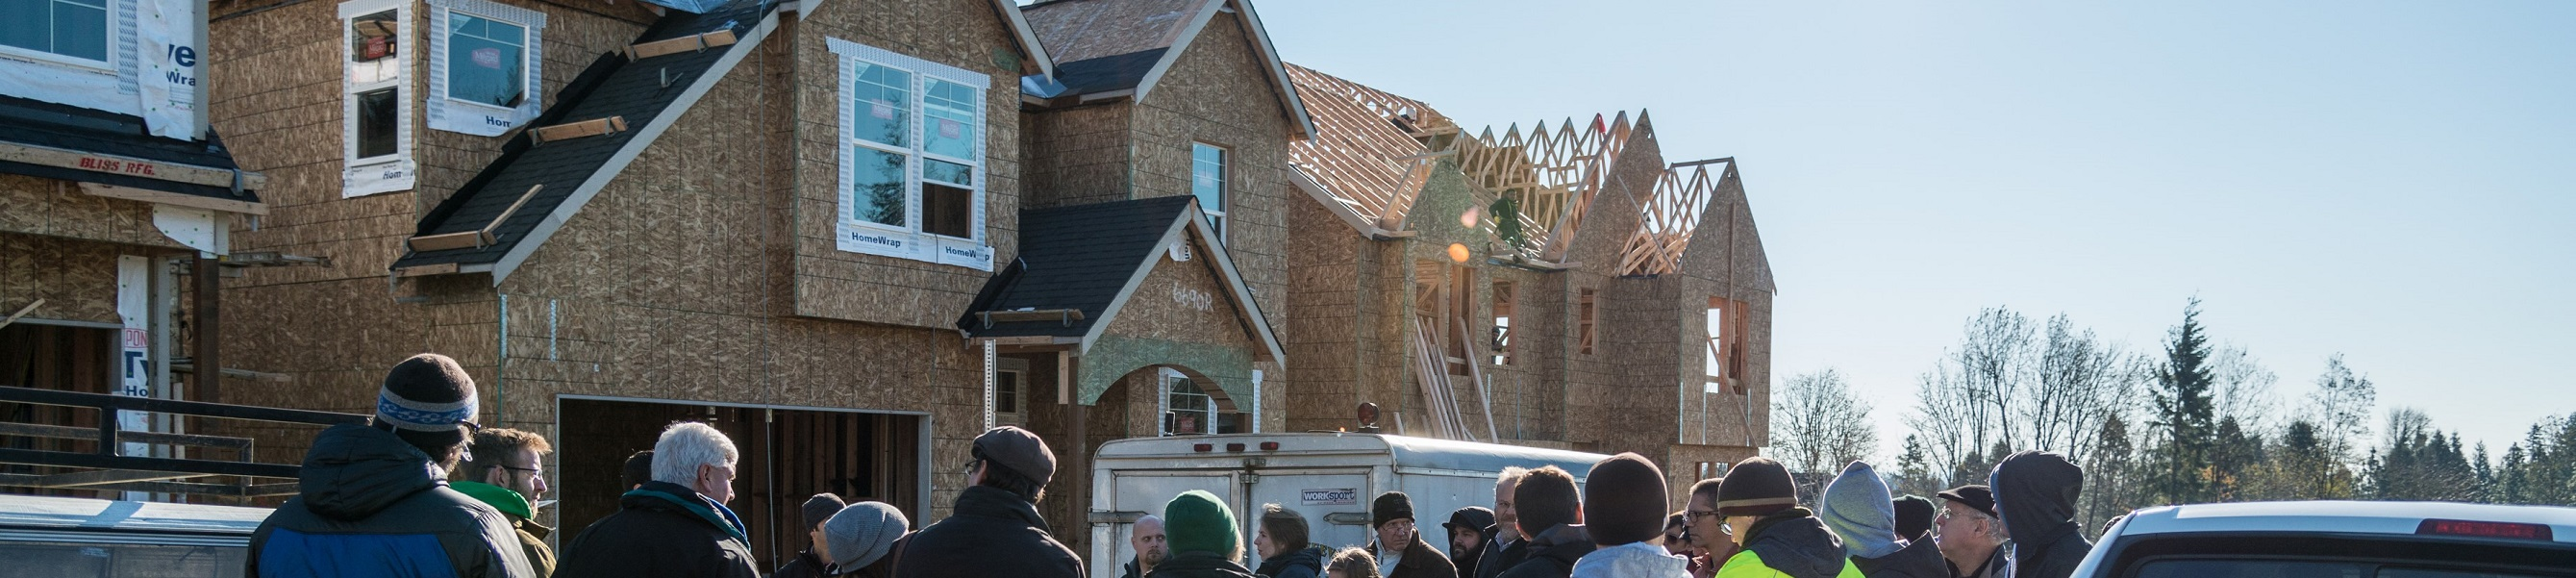 Partner Event: Energy Efficient Home Site Visit in Bend